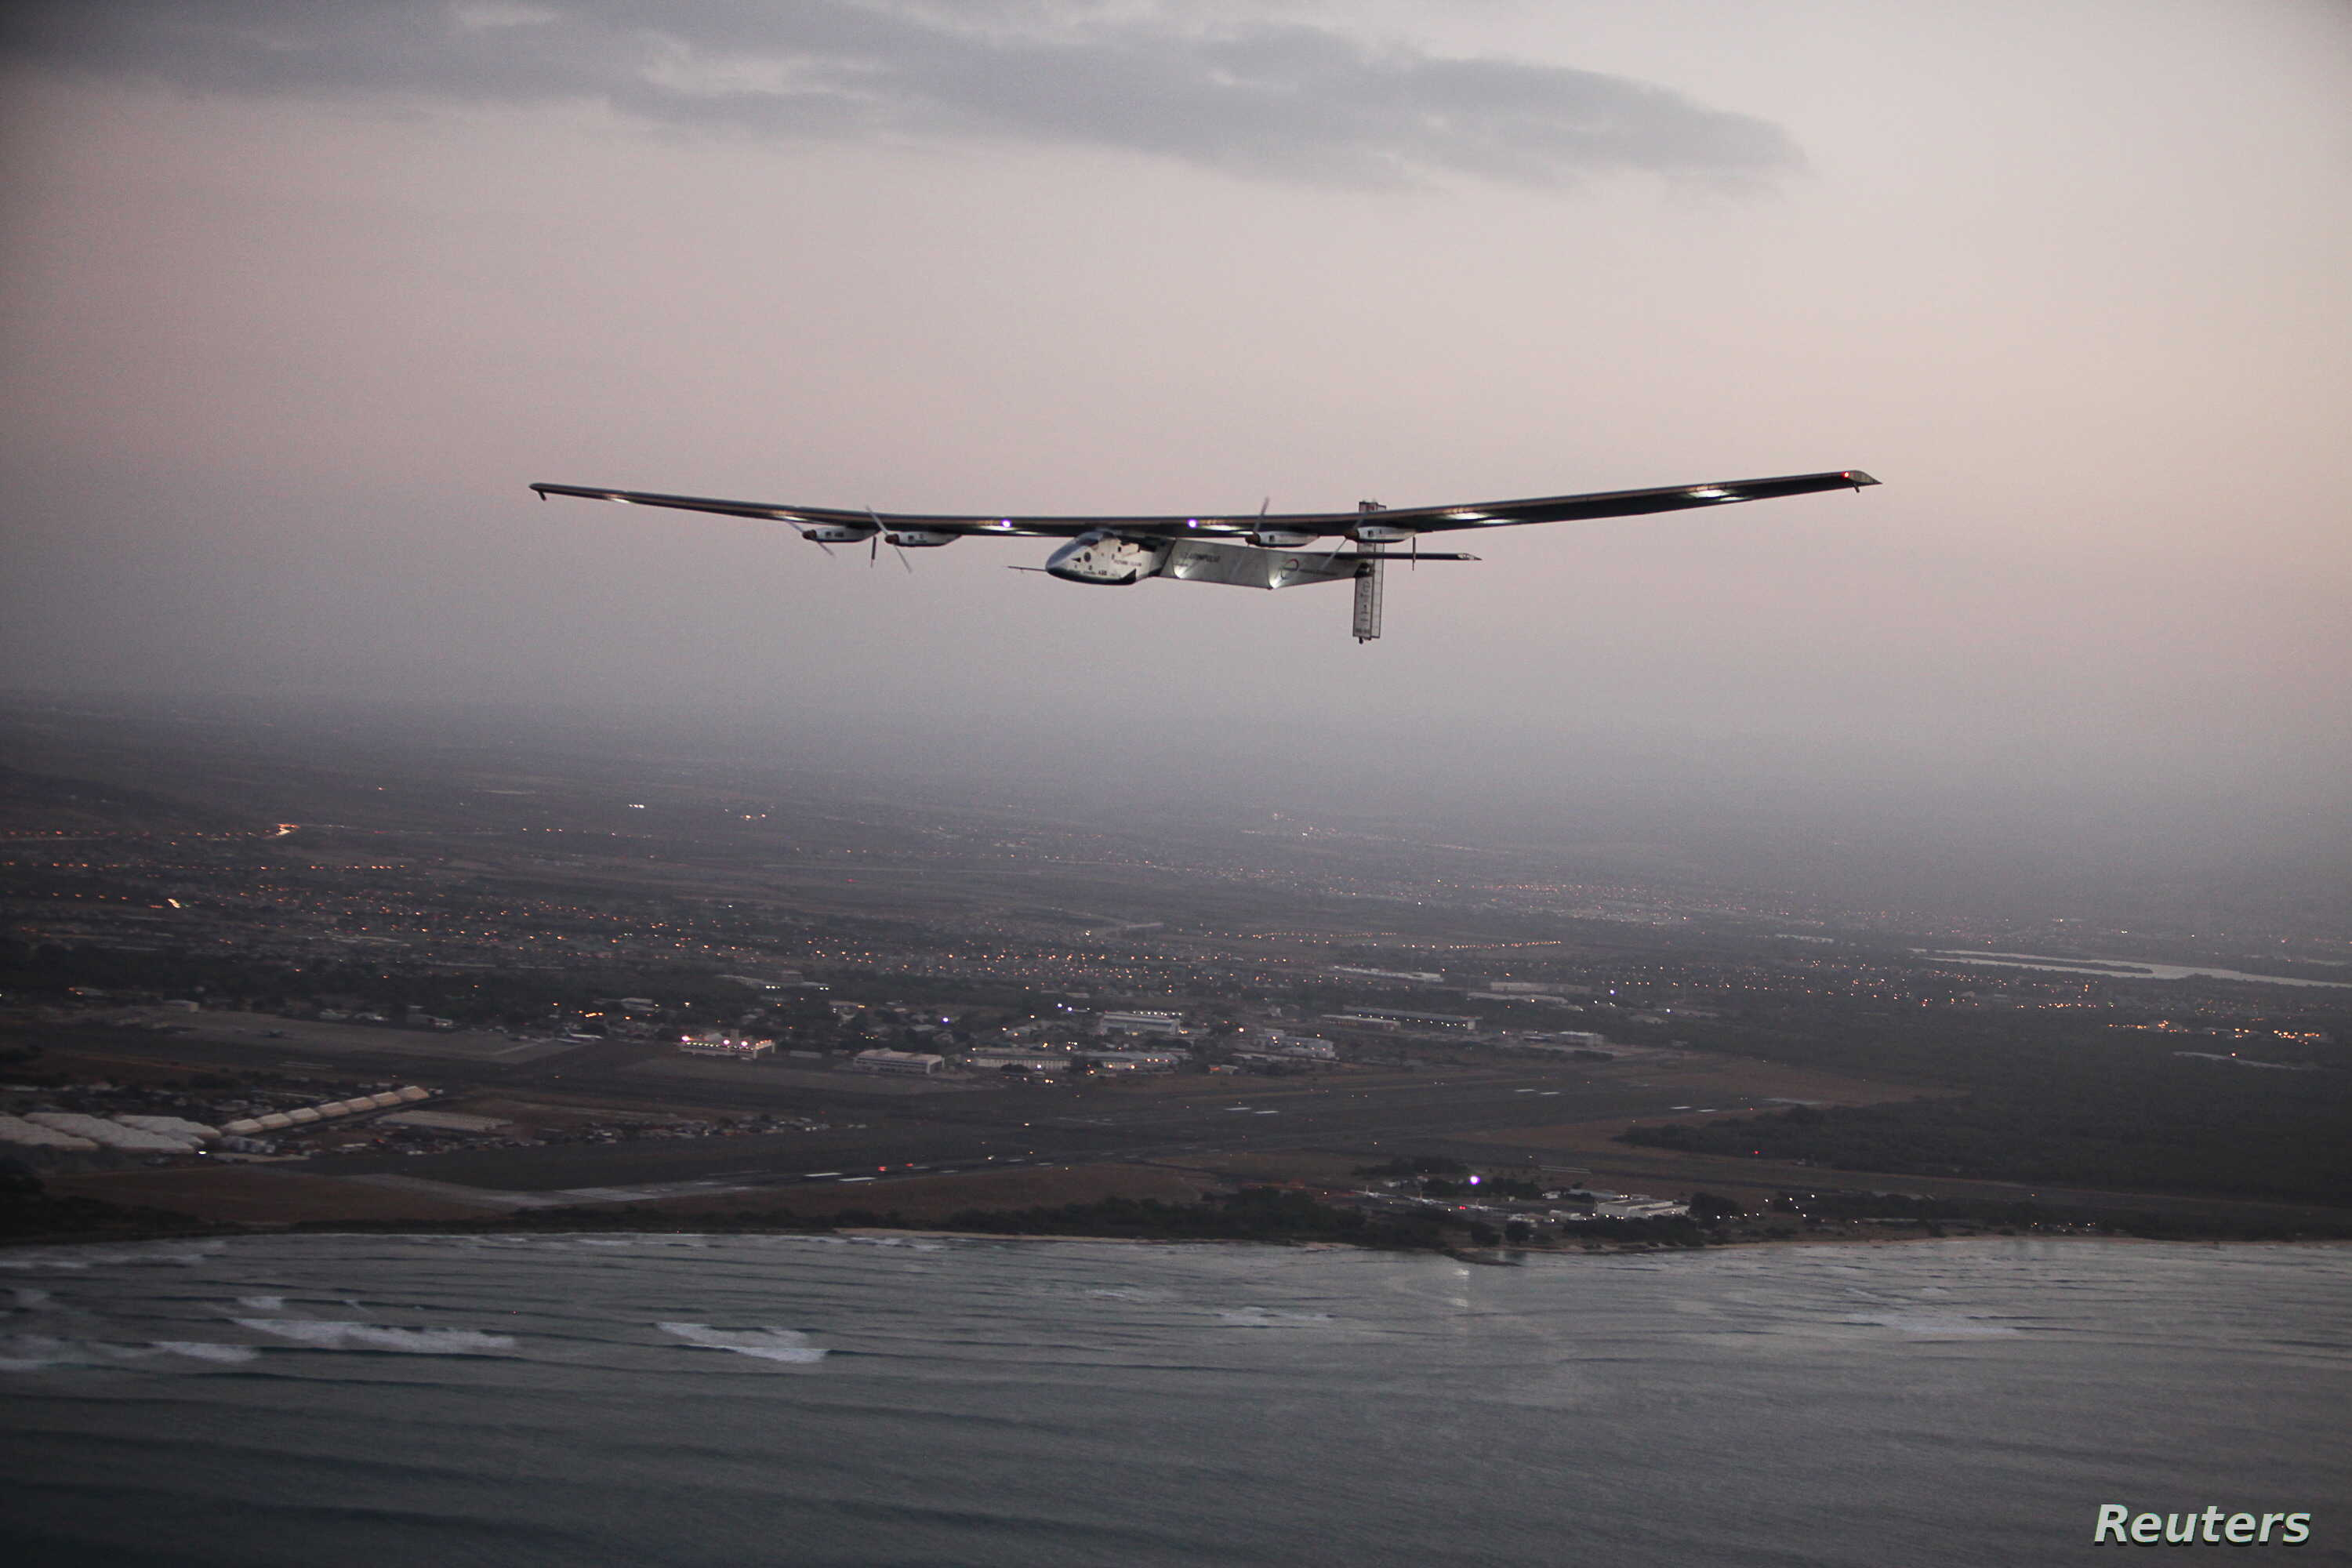 The Solar Impulse 2 airplane, flown by test pilot Markus Scherdel, flies off the coast of Oahu during a test flight from Kalaealoa Airfield in Kapolei, Hawaii, March 3, 2016.